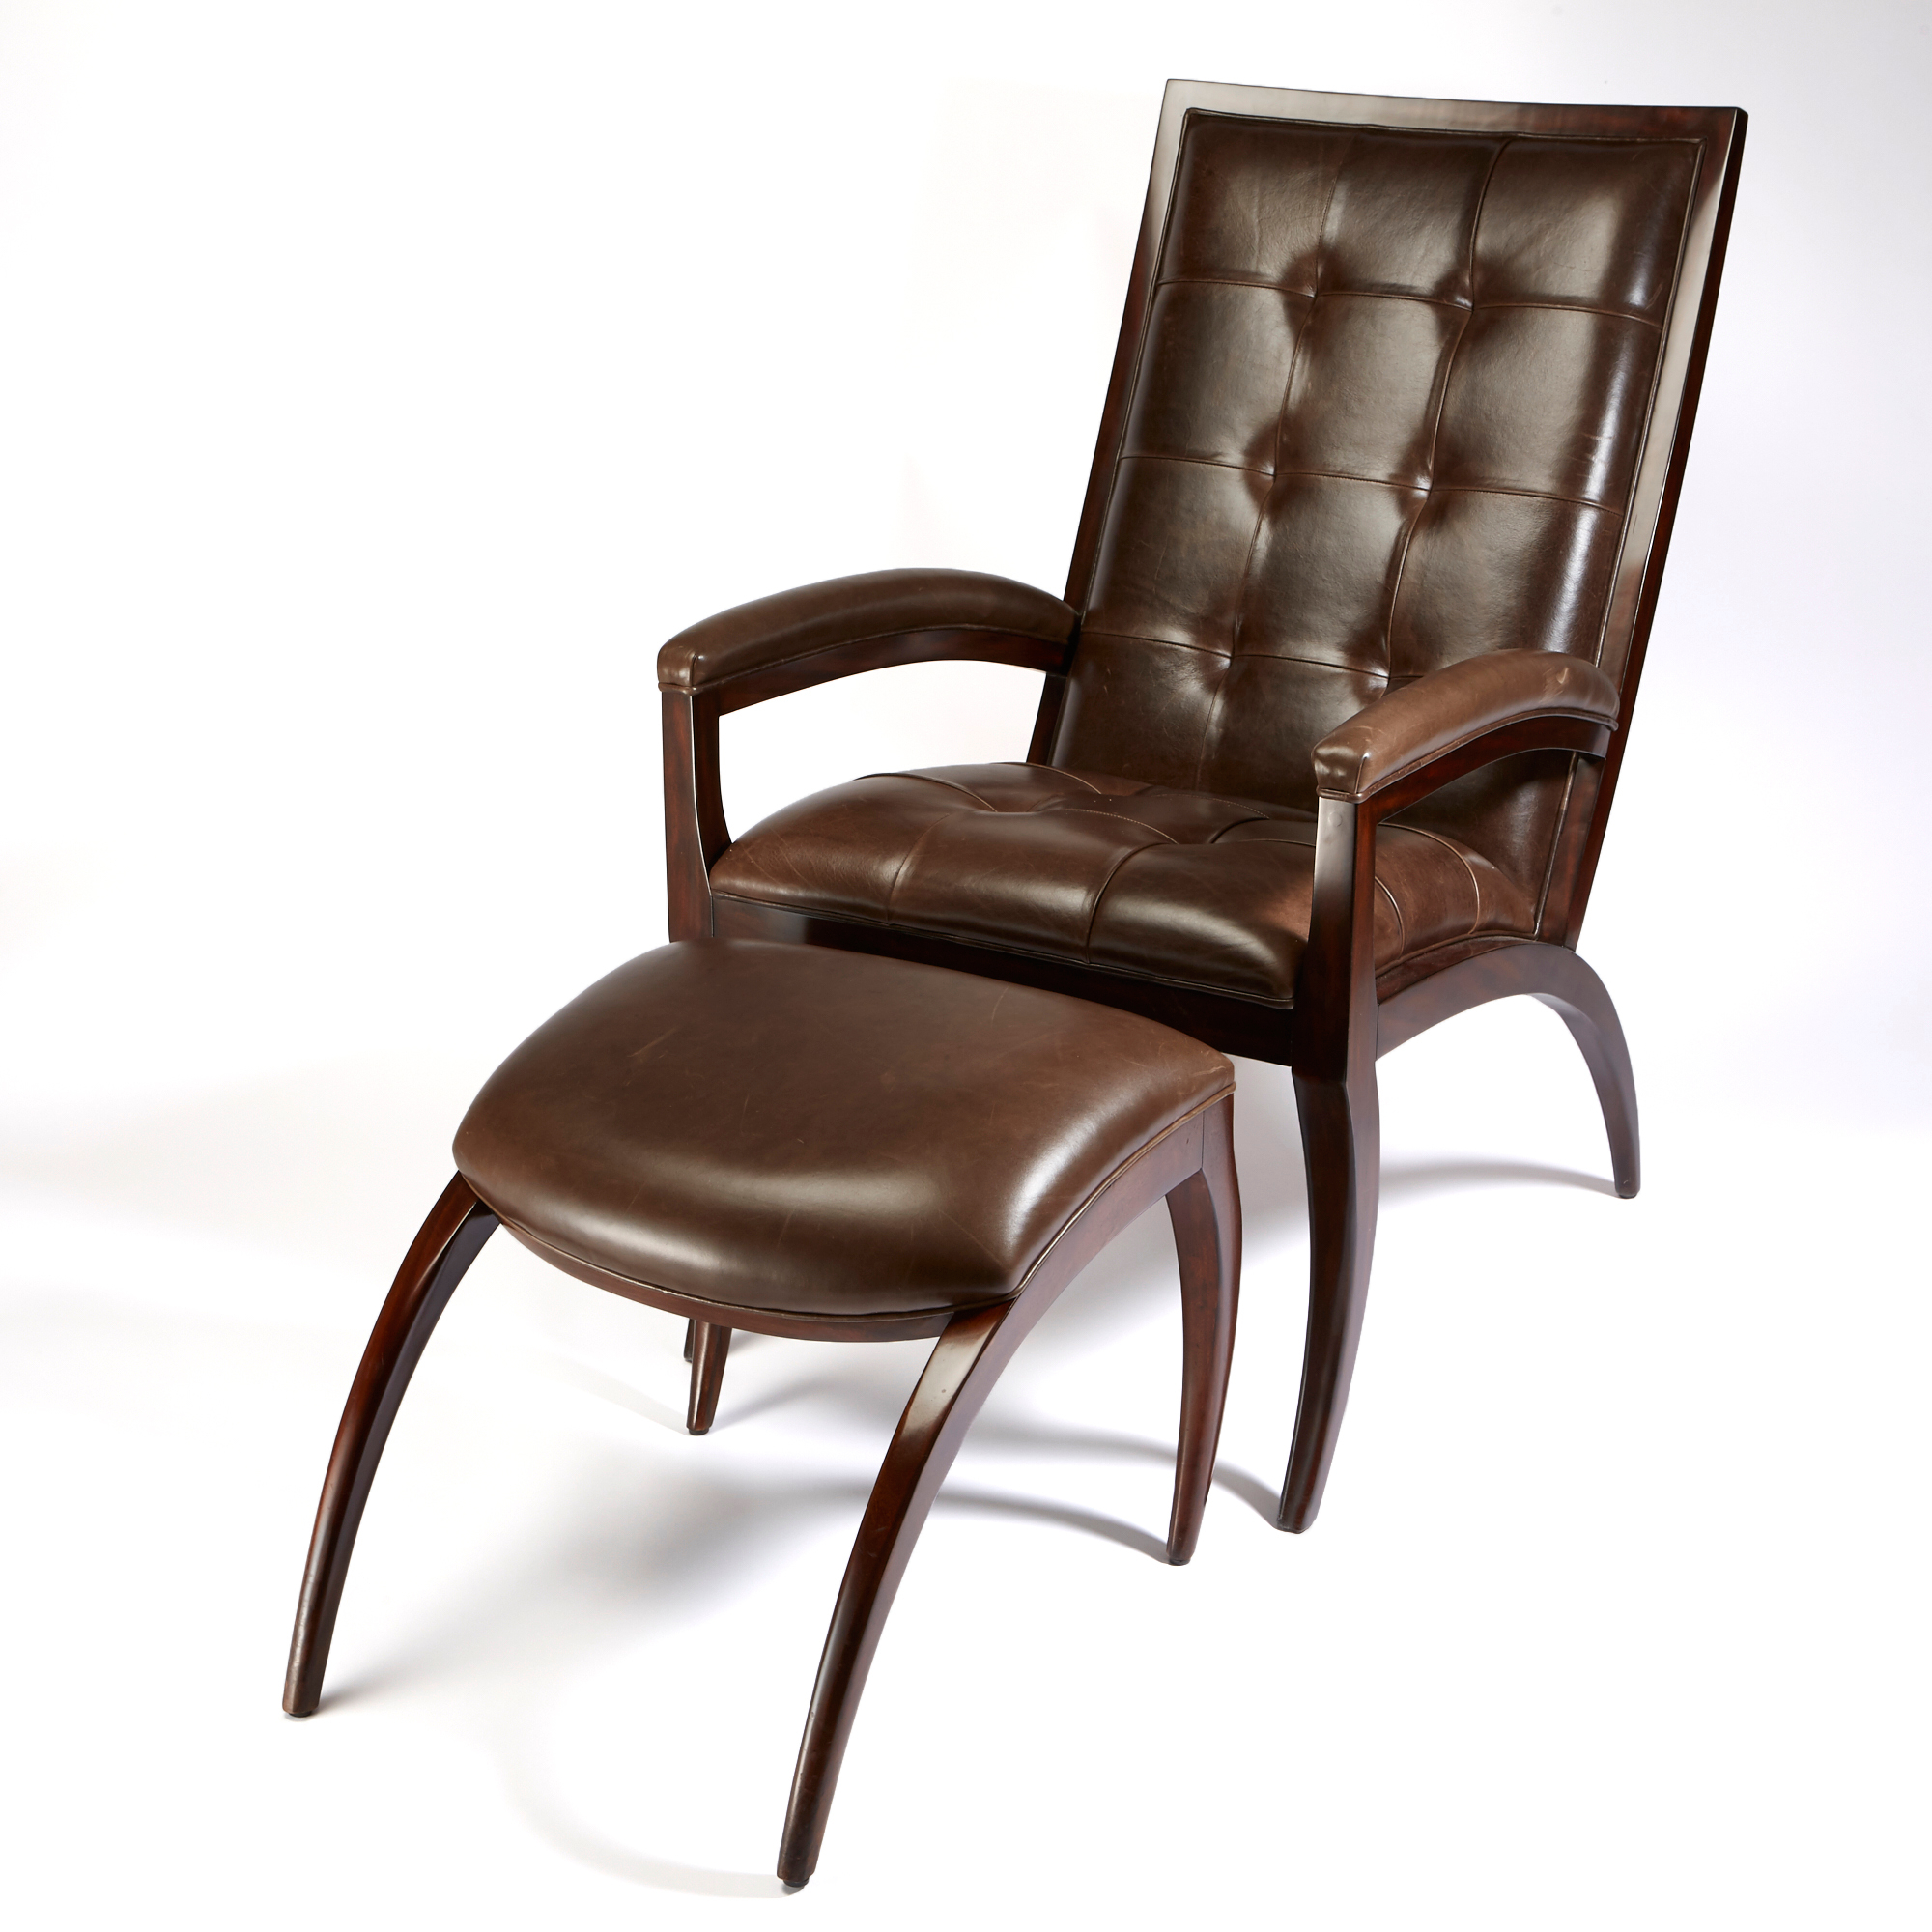 Theodore Alexander Bradley Leather Chair & Ottoman Set